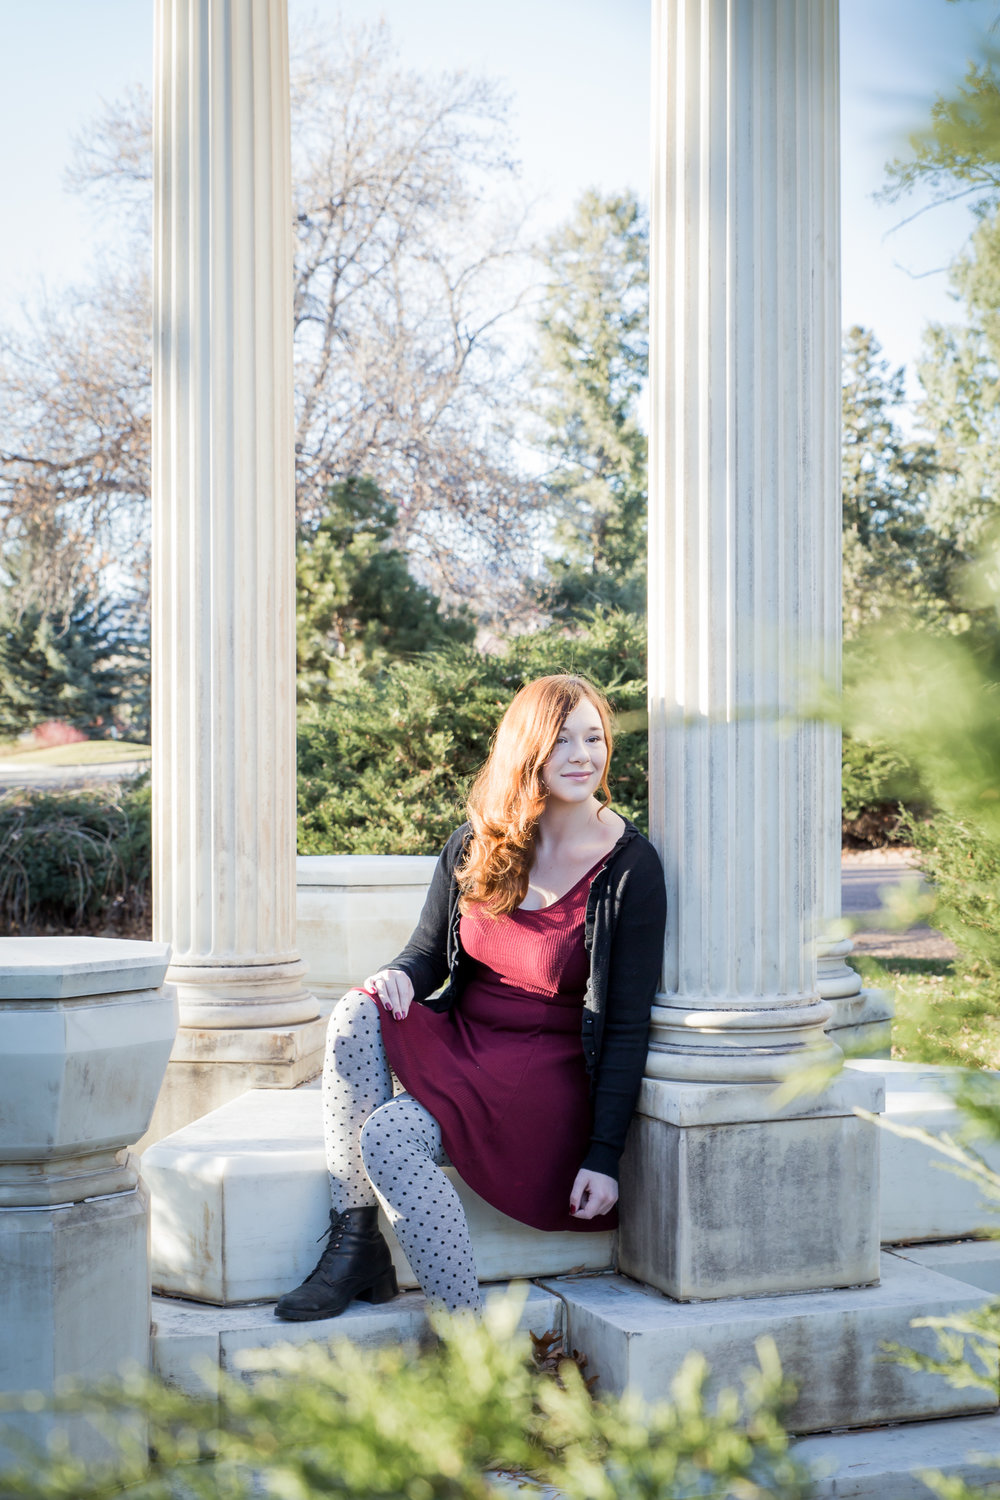 Colorado Spring Senior Portraits | Stacy Carosa Photography | Colorado Springs Senior Photographer